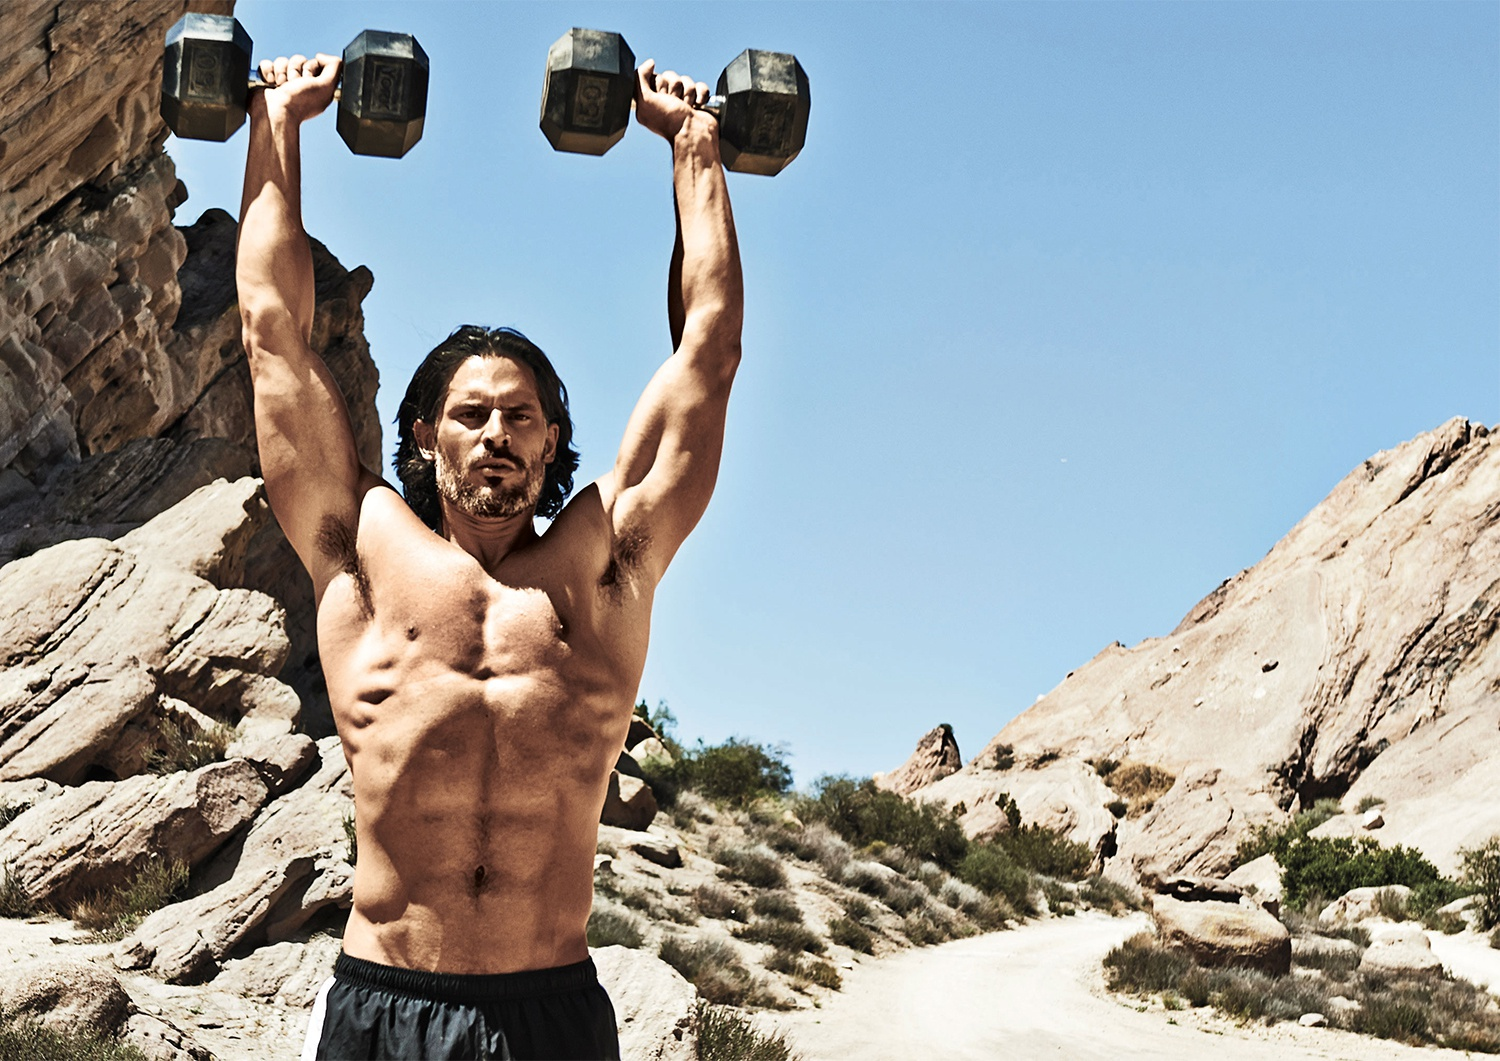 joe manganiello press dumbbell pxf9